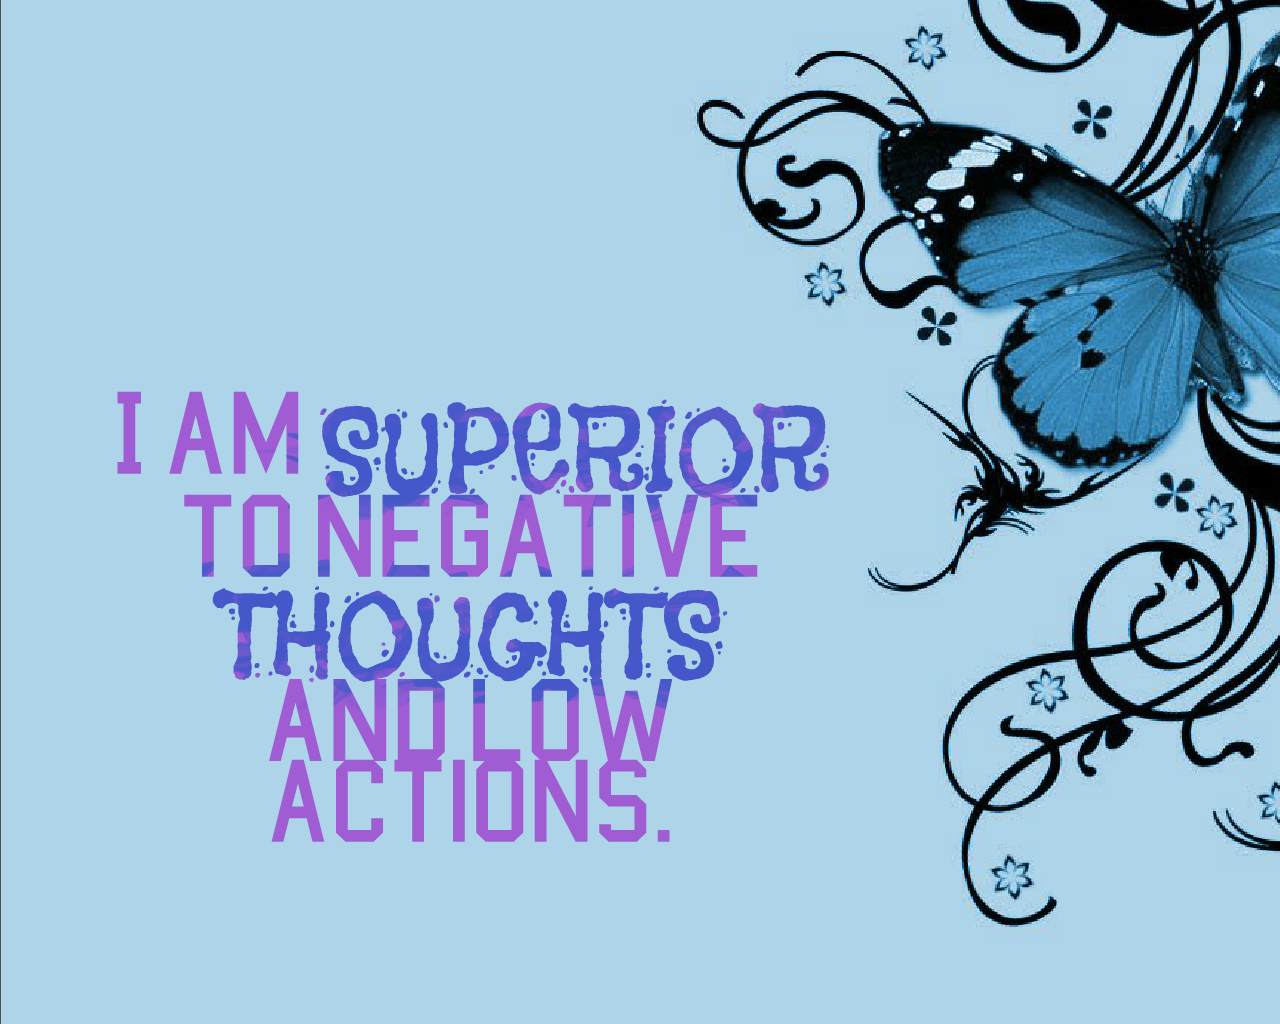 June 2014 Positive Affirmations Wallpapers, Positive Affirmations Wallpapers, Affirmations Wallpapers